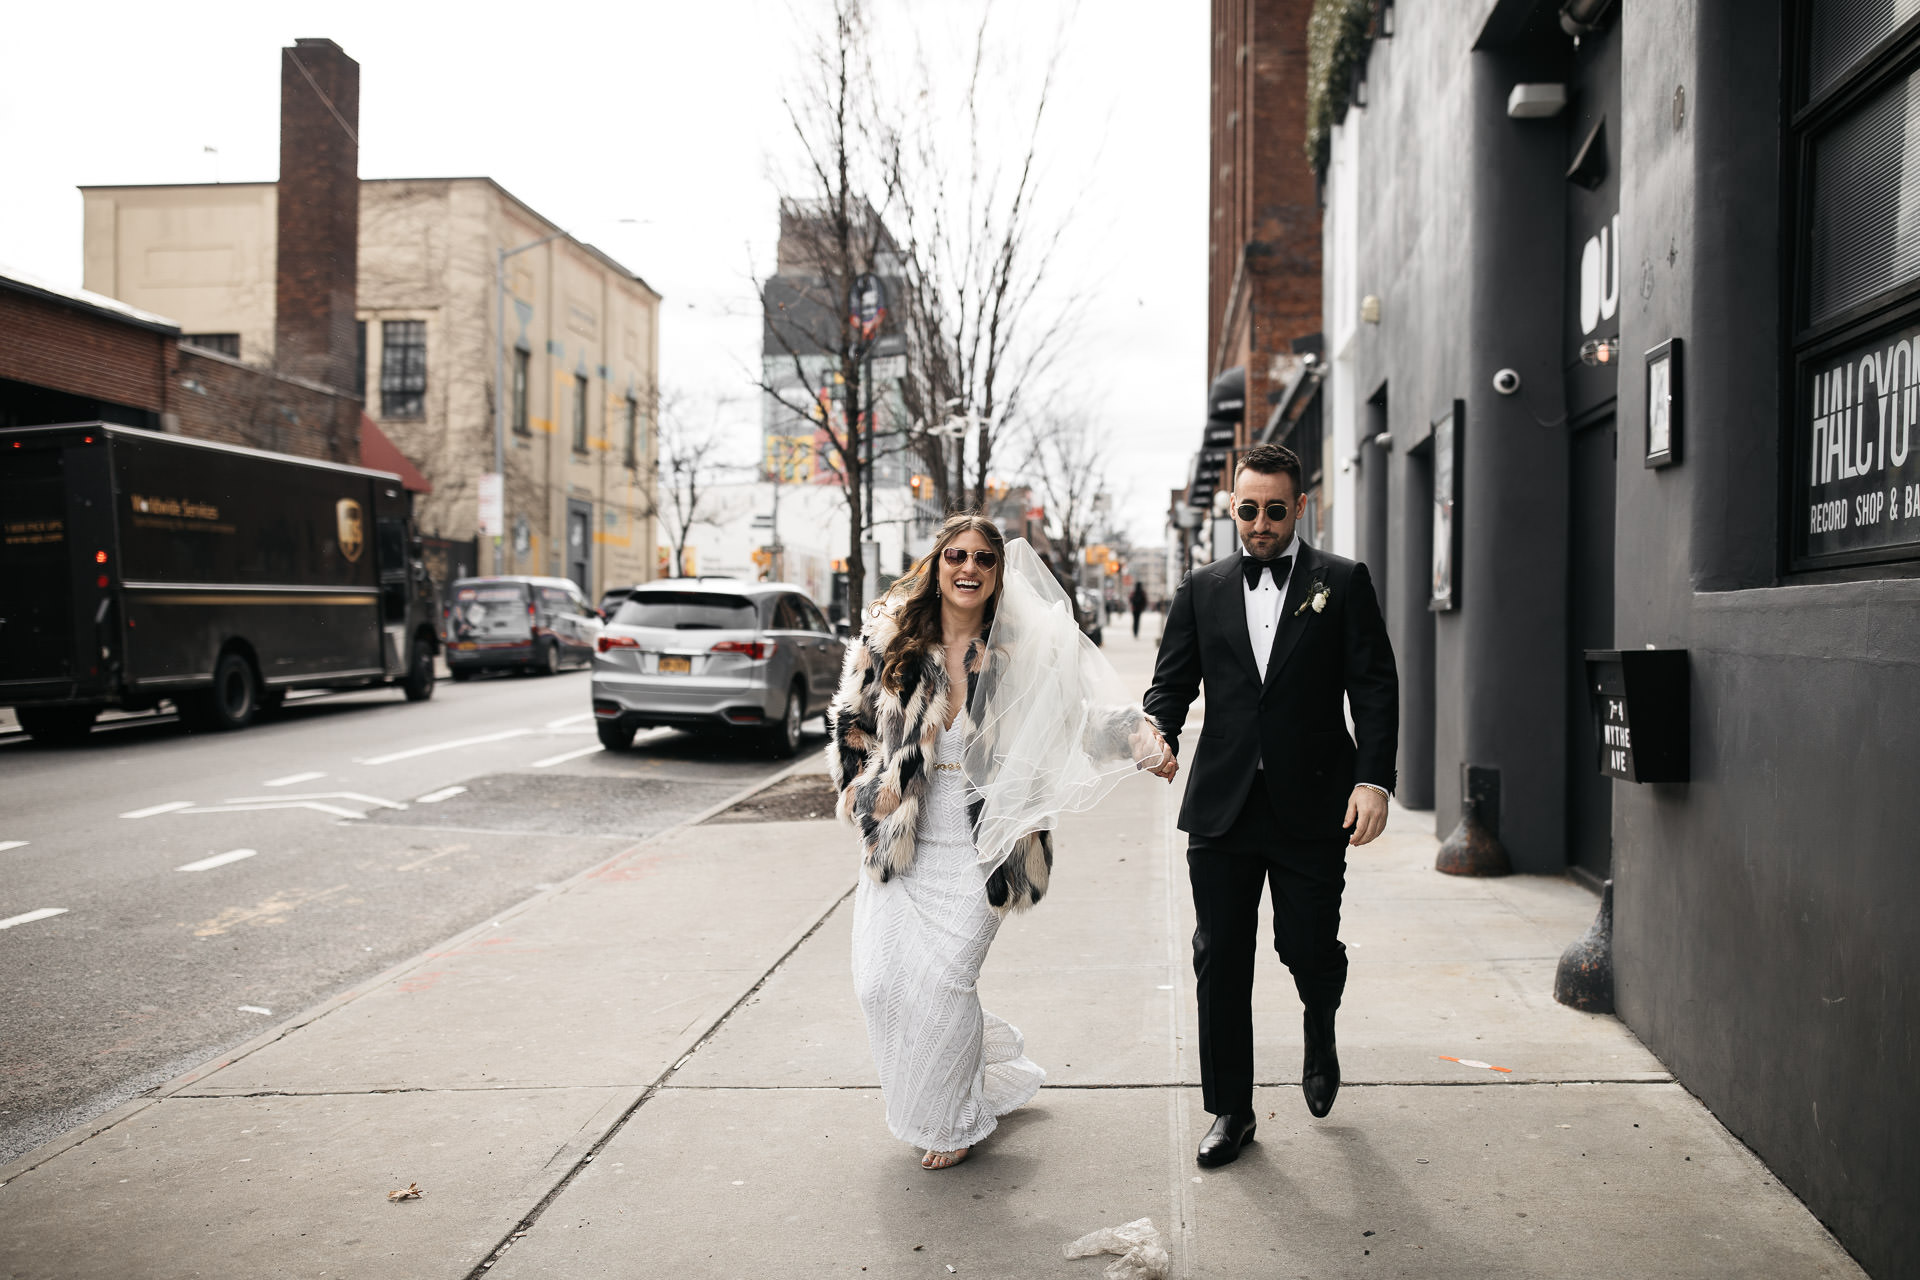 Stephanie & Nick's Wedding at the 501 Union In New York by Jean-Laurent Gaudy